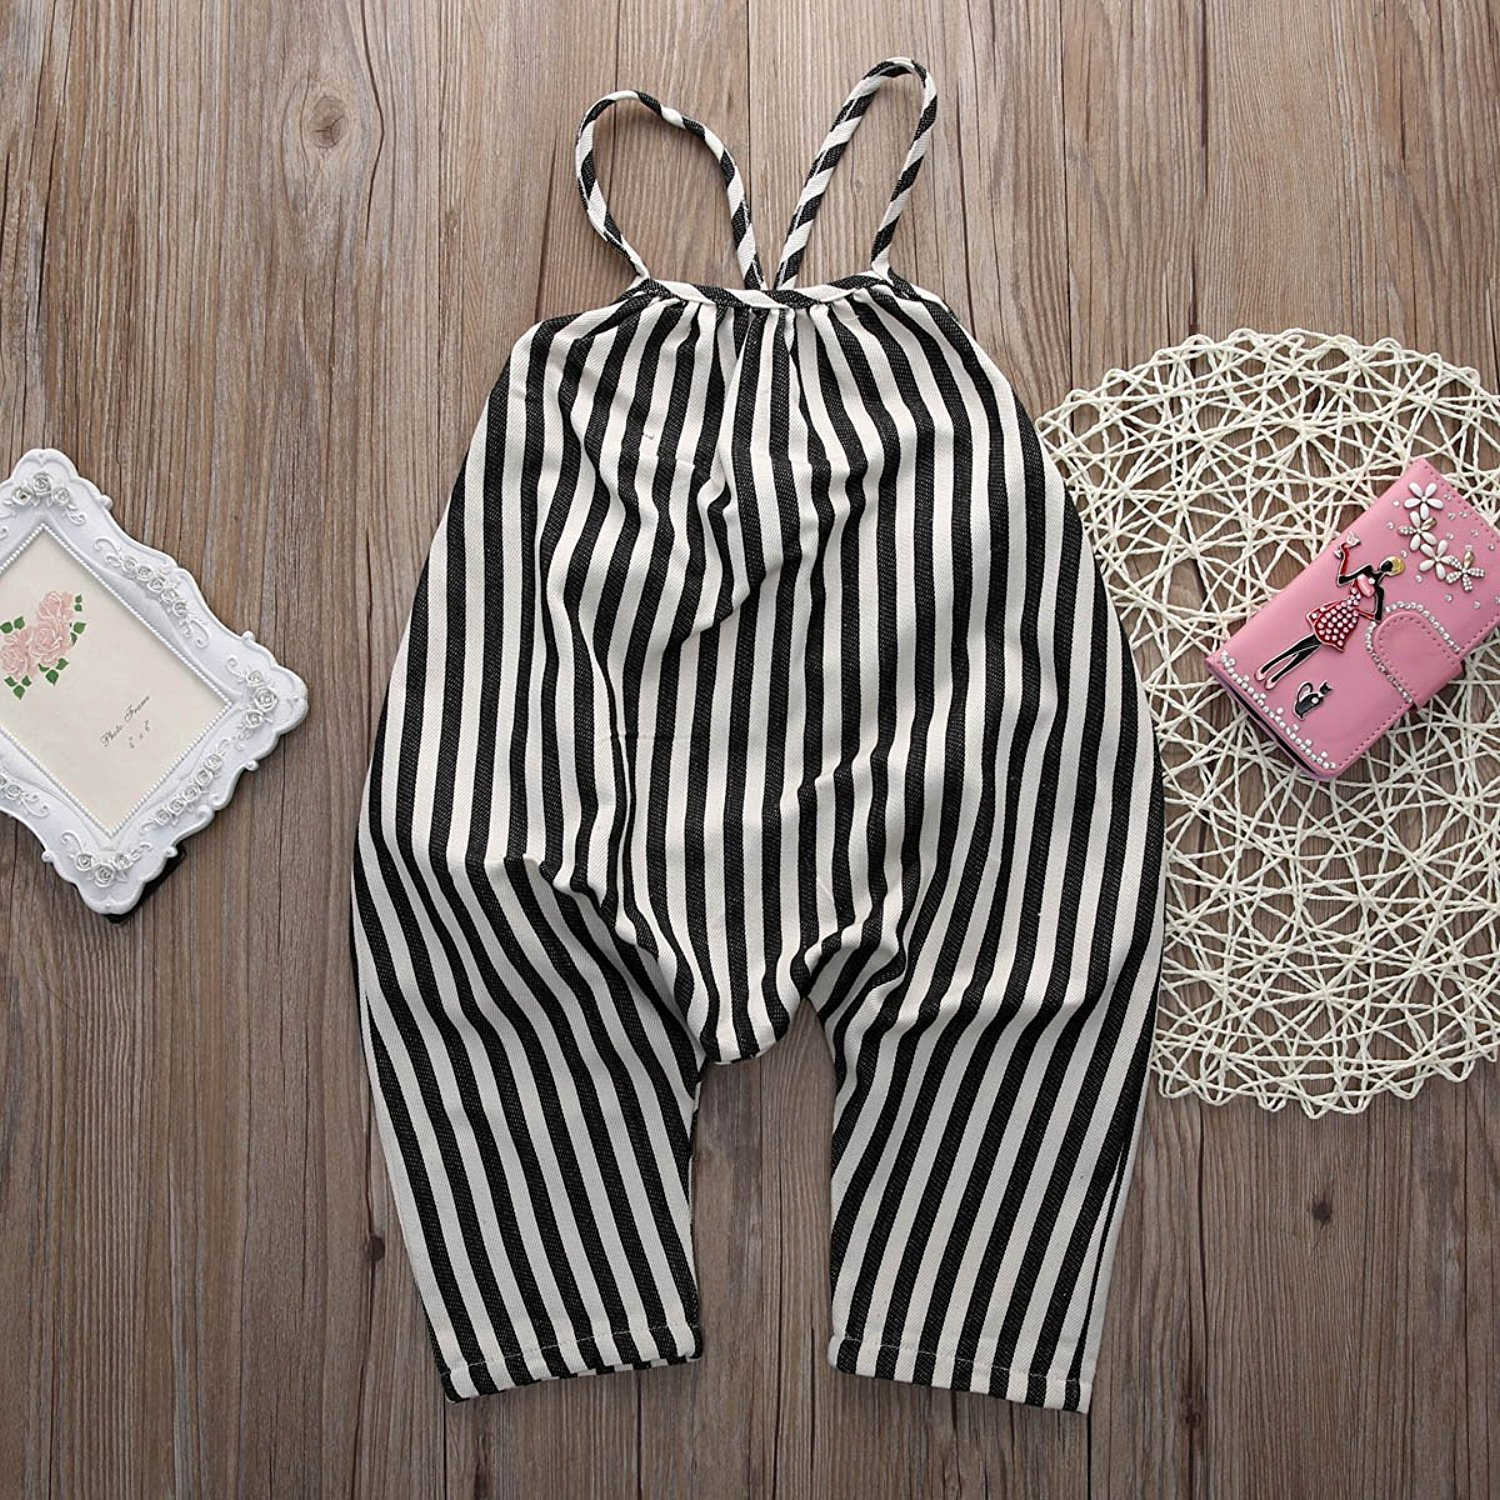 Striped Harem Baby Romper